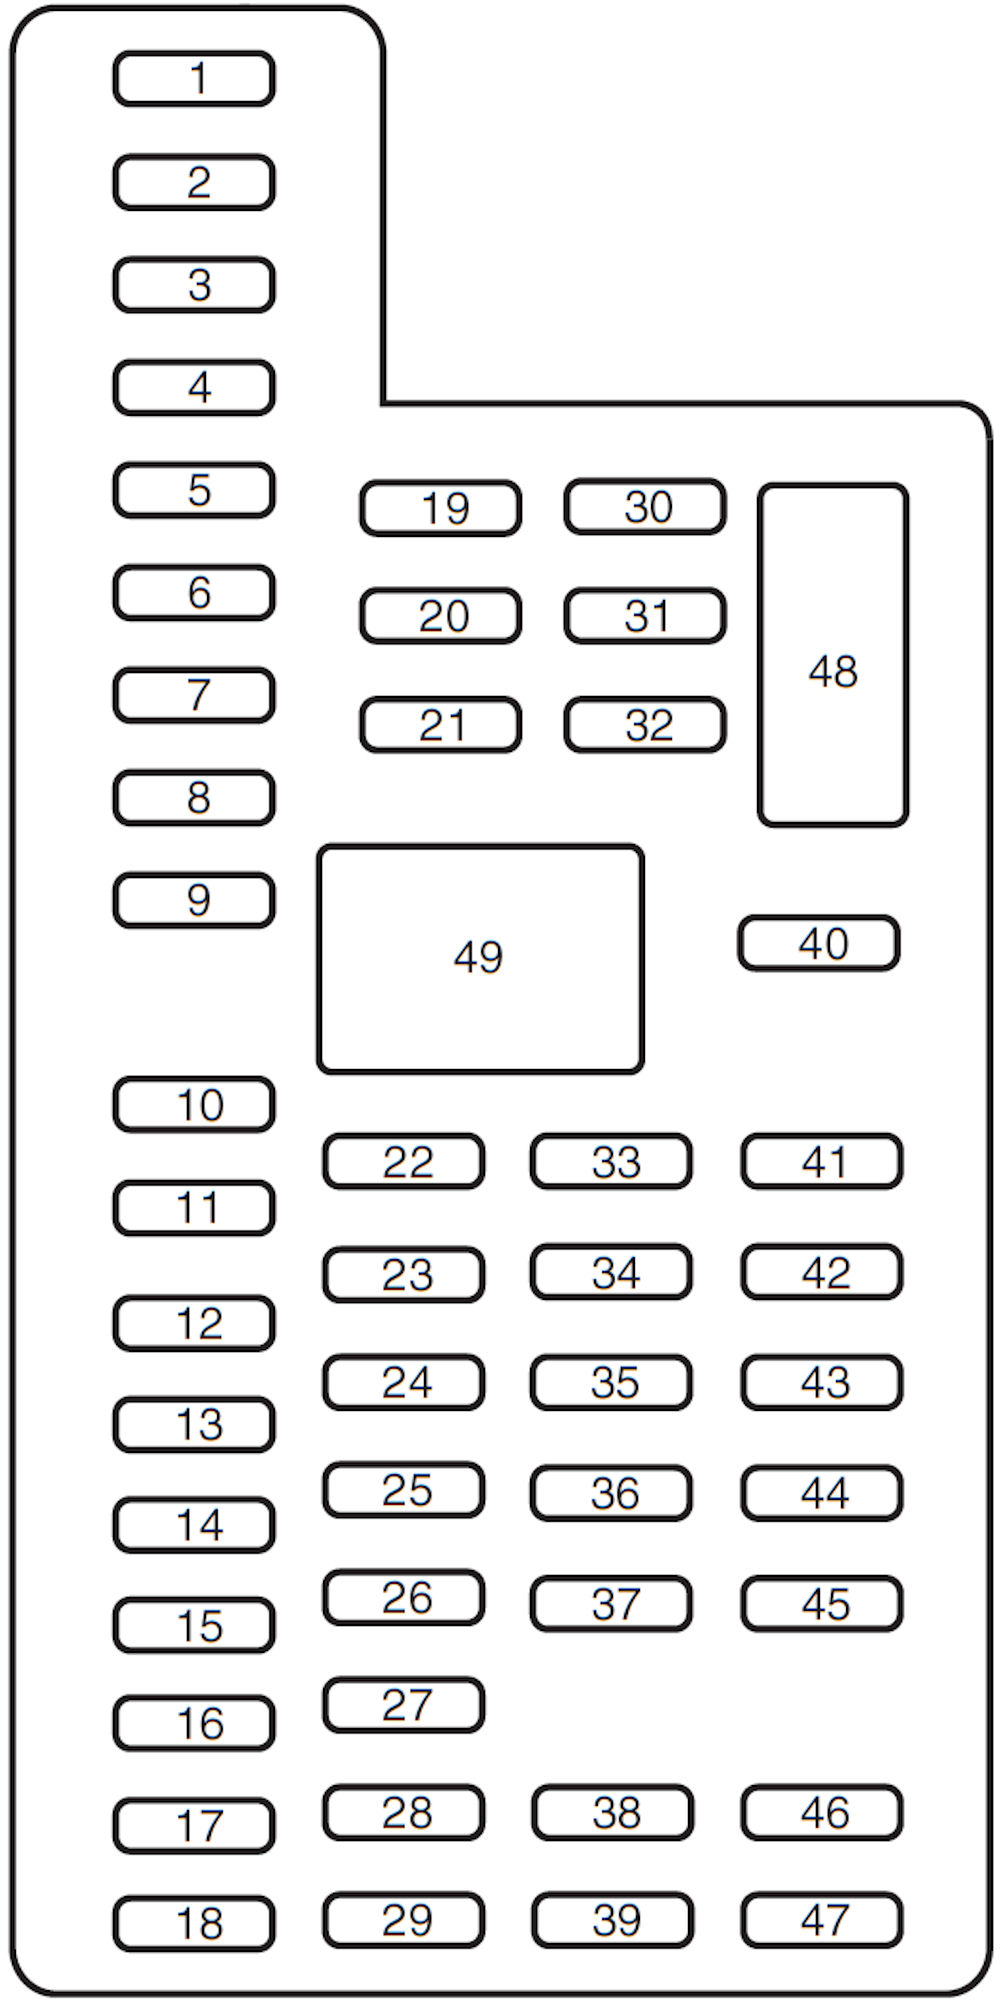 2012 Ford F150 Fuse Box Diagram Under Hood Electrical 2001 F 150 Heater Fan Platinum House Wiring Symbols U2022 2008